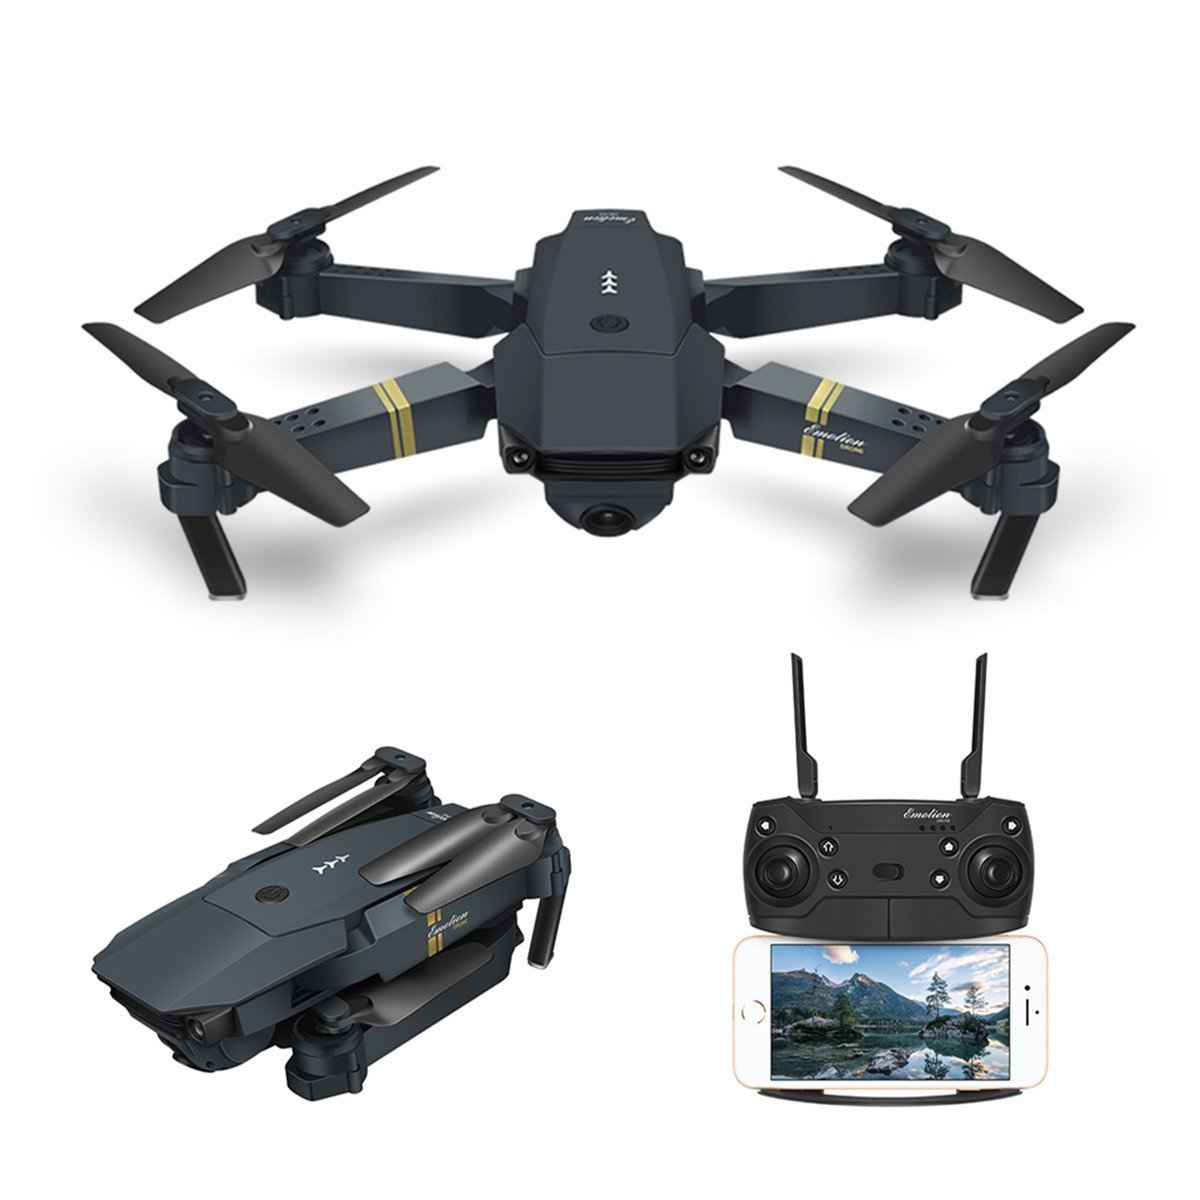 Best Foldable Drone Under $100 - RCHelicop on coolest lego, coolest design, coolest airplane,